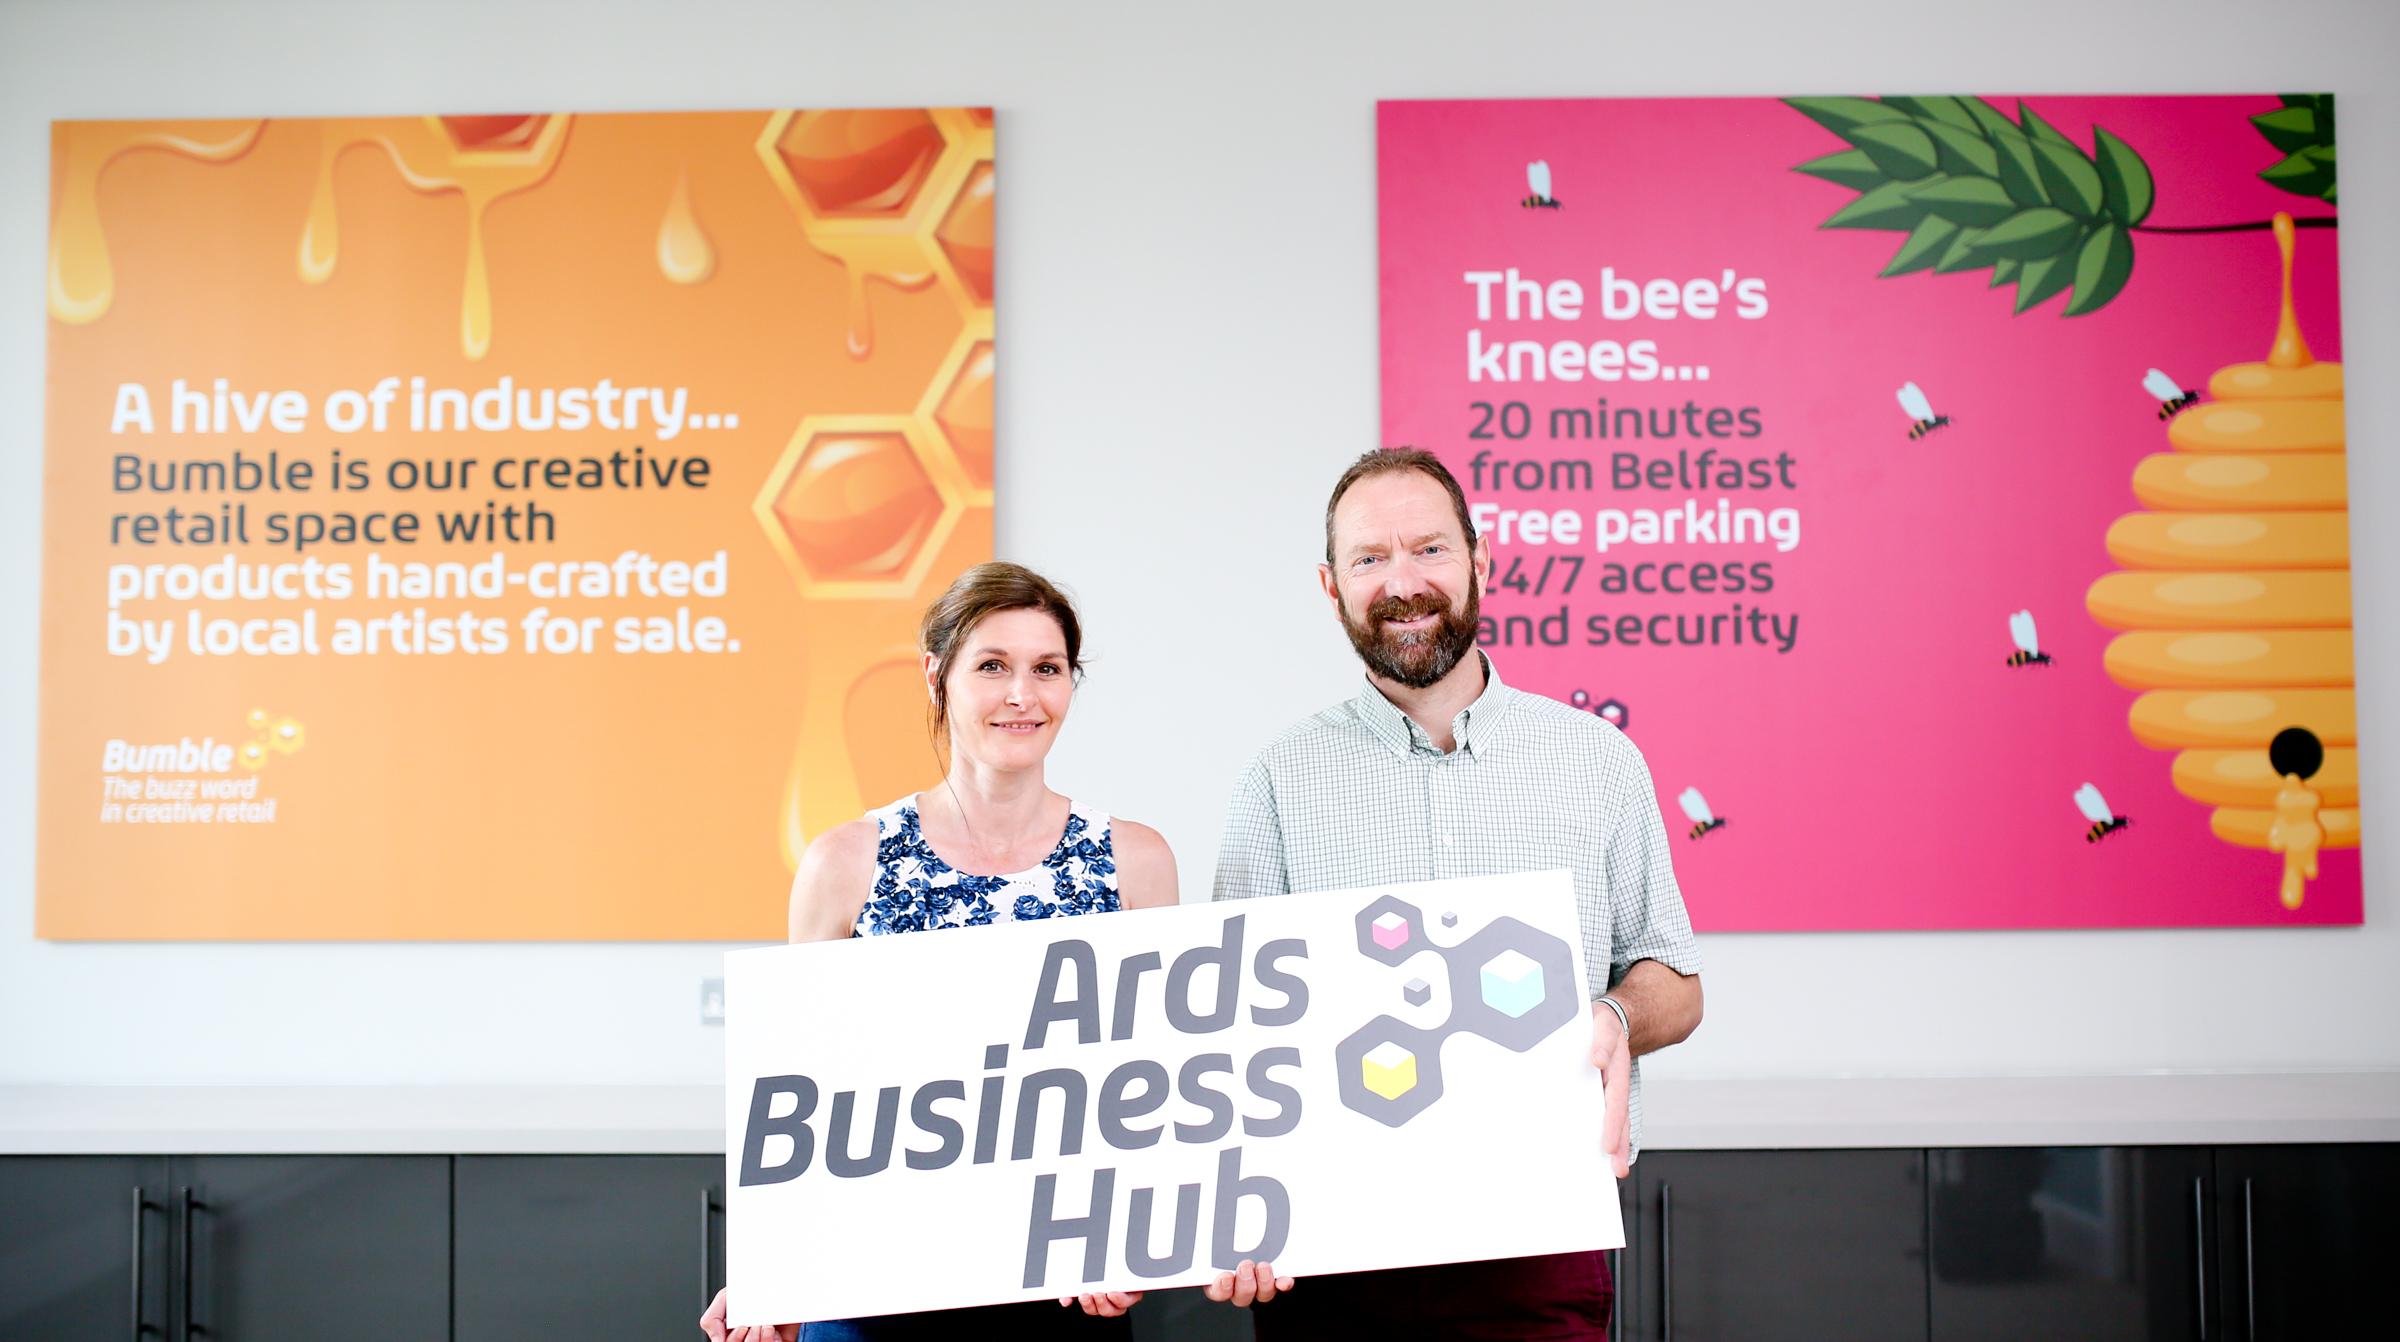 Ards Business Hub launches ambitious new strategy